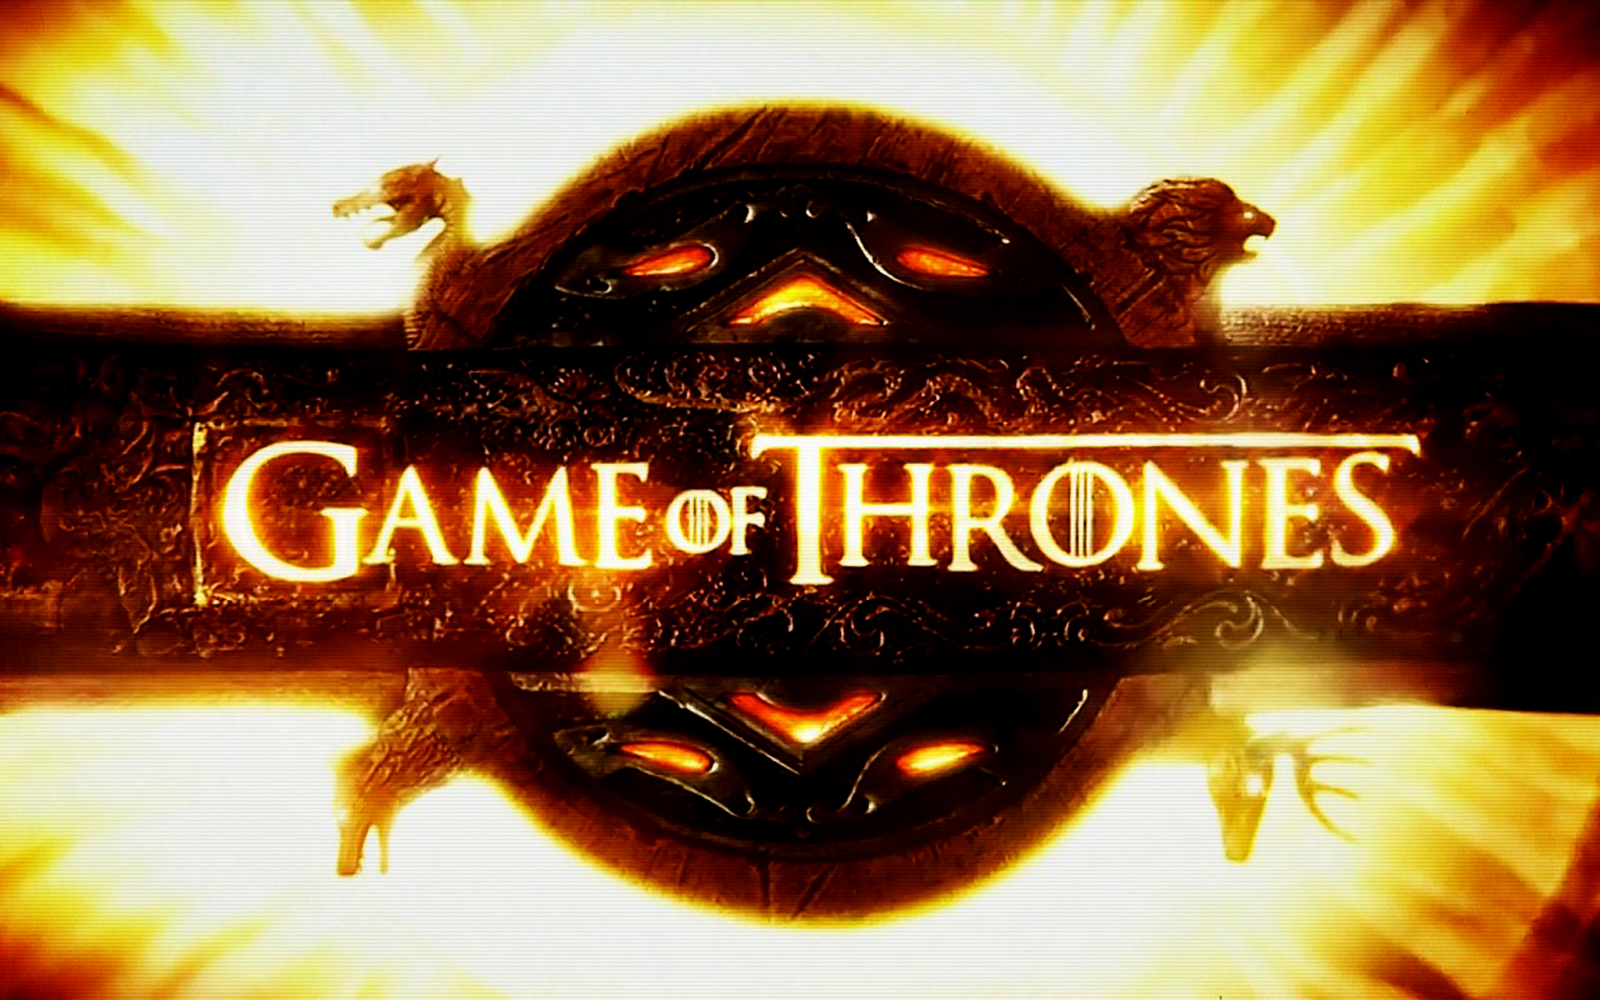 http://3.bp.blogspot.com/-e8YrgpEsa3w/UIB5IKbPR_I/AAAAAAAAFhY/HLtGp9-g4fc/s1600/Game-of-Thrones-Title-Logo-HD-Wallpaper_Vvallpaper.Net.jpg